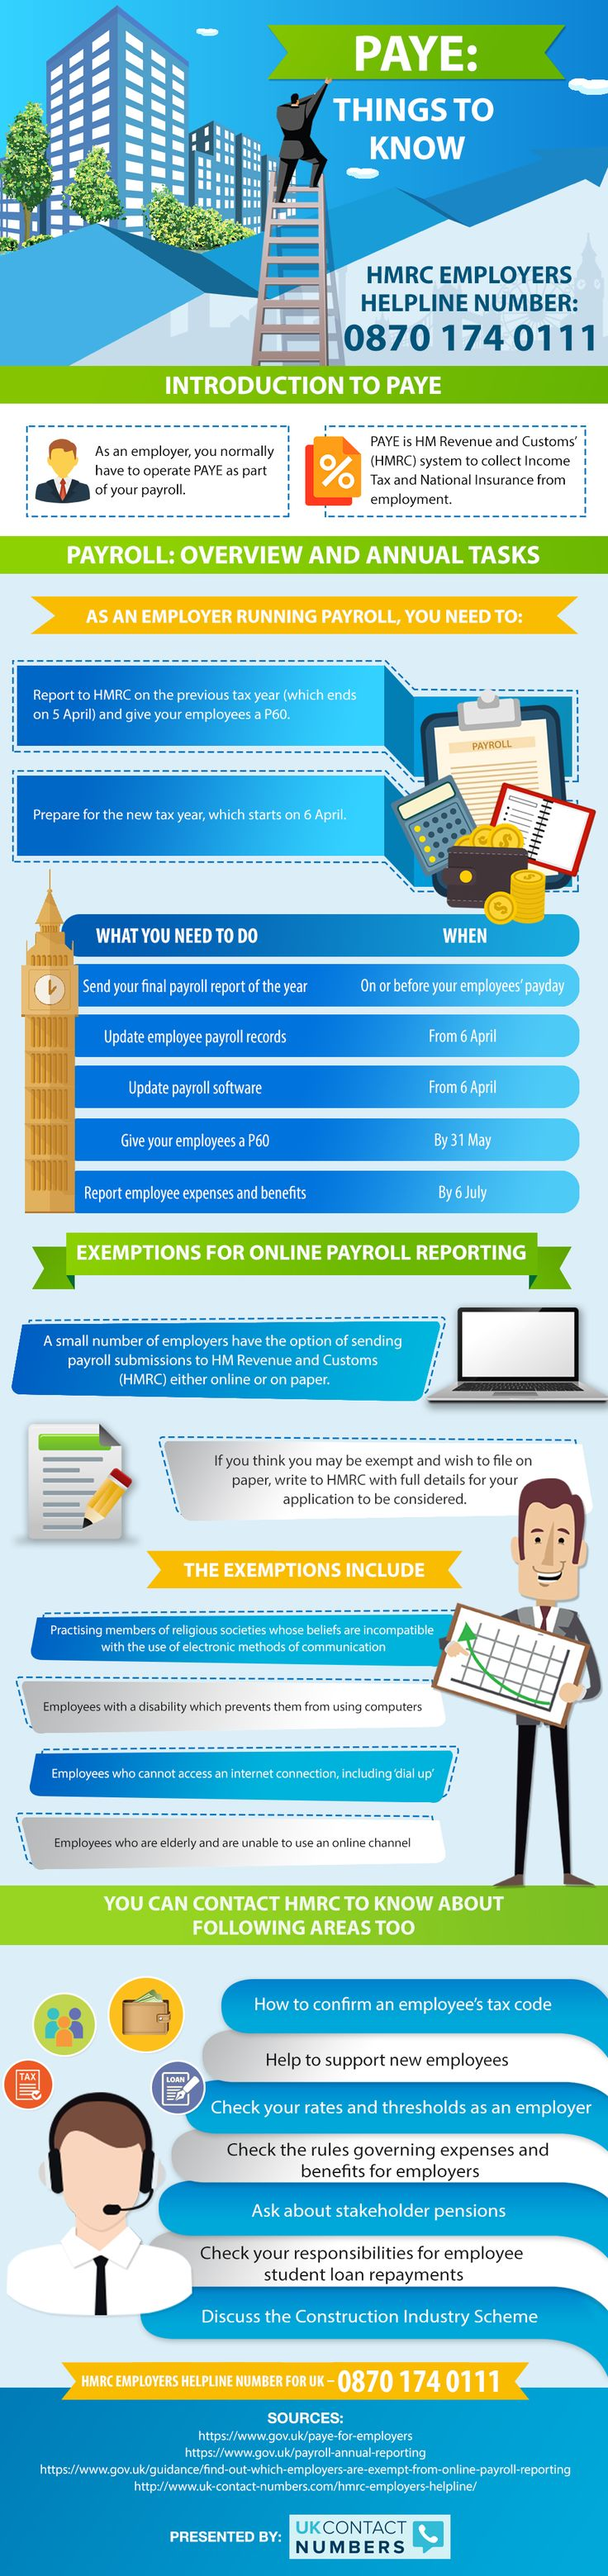 The following info graphic contains information about HMRC and its employer's helpline no for UK. HMRC is a non-ministerial department and UK's tax and customs authority responsible for providing financial support to people. As an employer based in UK you can call HMRC to get advice covering many areas such as queries about employees tax code, stakeholders pension rules governing schemes for benefits of employers and much more. http://www.uk-contact-numbers.com/hmrc-employers-helpline/